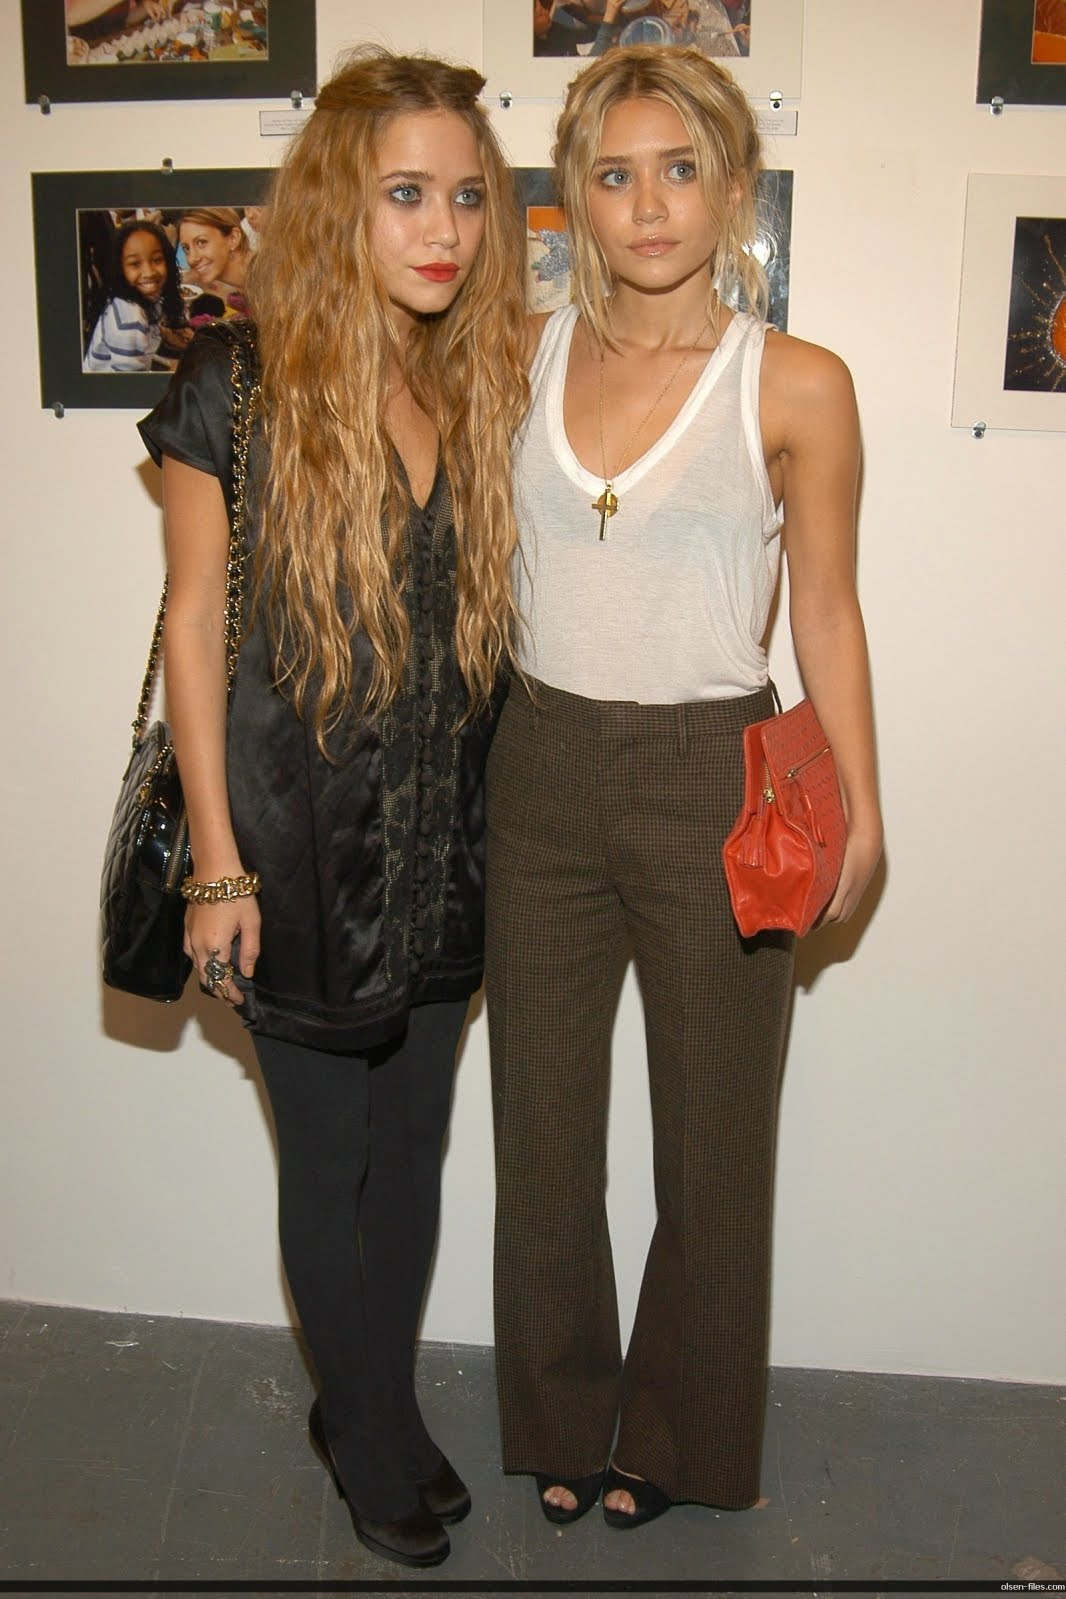 http://1.bp.blogspot.com/_ZbKMZbC_R2A/S_-ZqToWQ6I/AAAAAAAAARo/9BizTWtIyW8/s1600/mary-kate-and-ashley-olsen.jpg